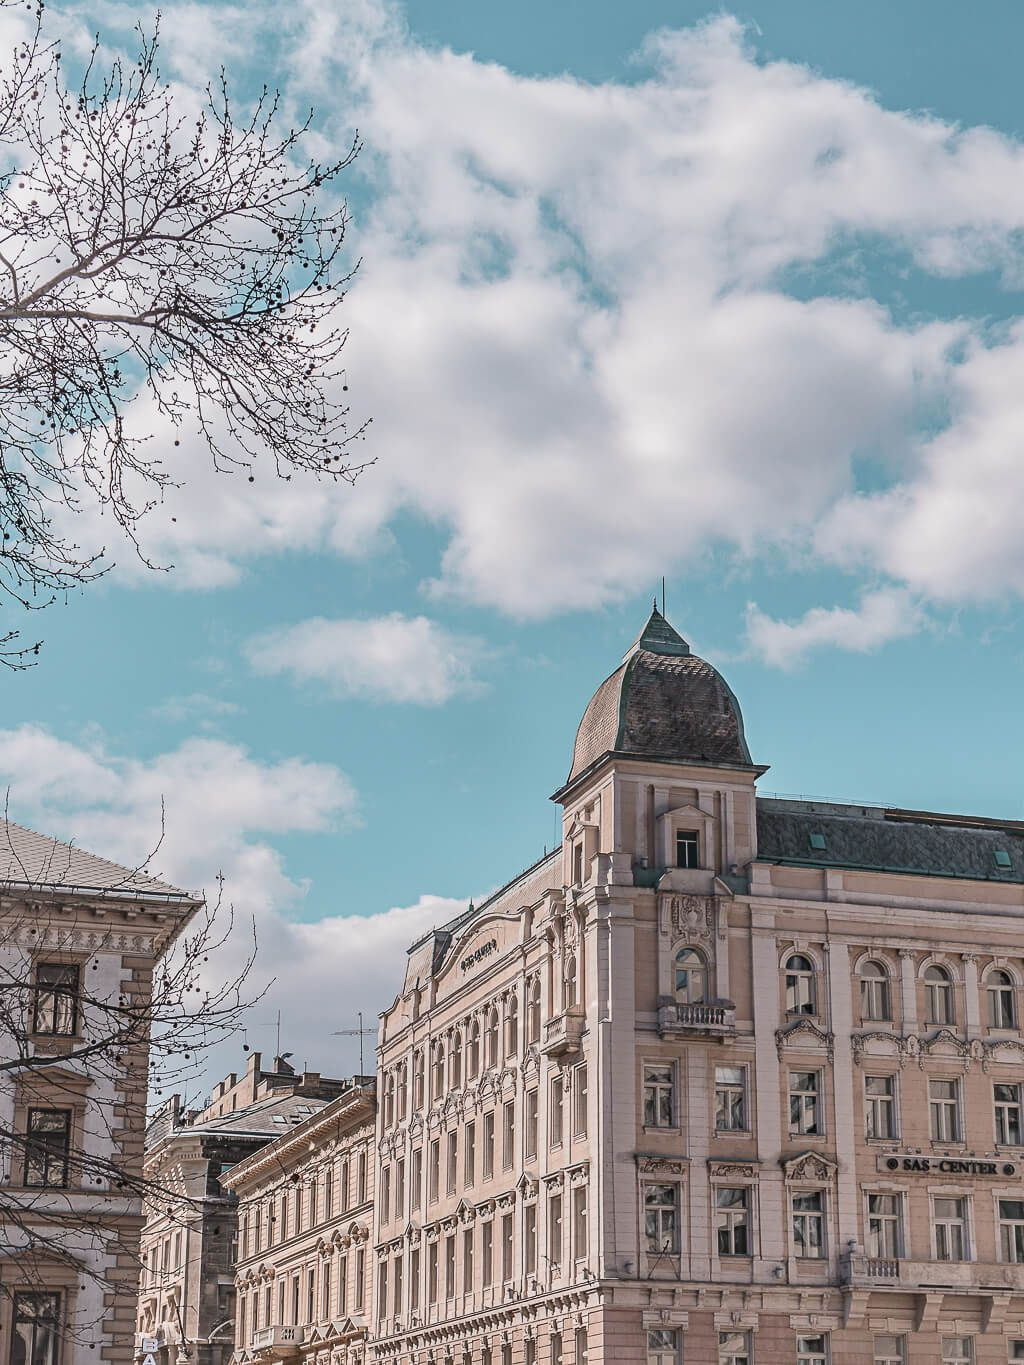 Hungary 20 Pictures That Will Make You Want To Visit